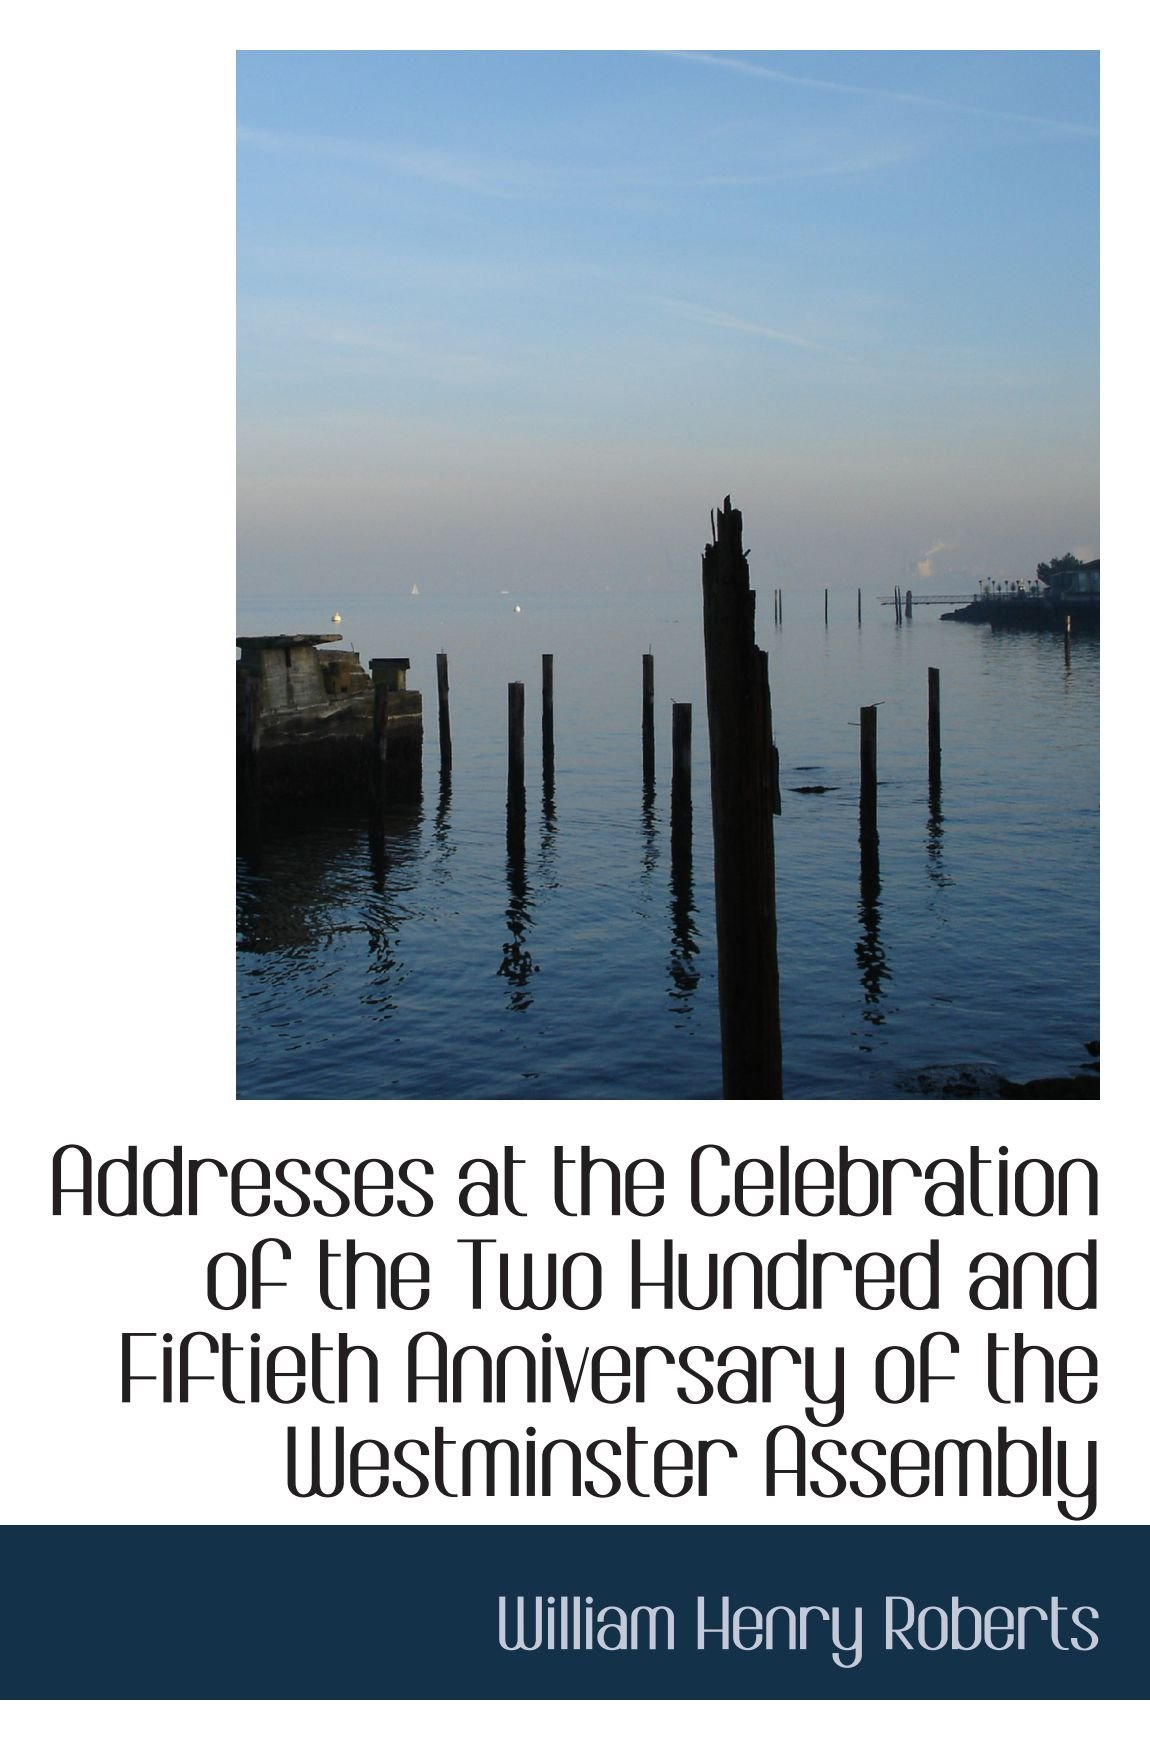 Addresses at the Celebration of the Two Hundred and Fiftieth Anniversary of the Westminster Assembly PDF